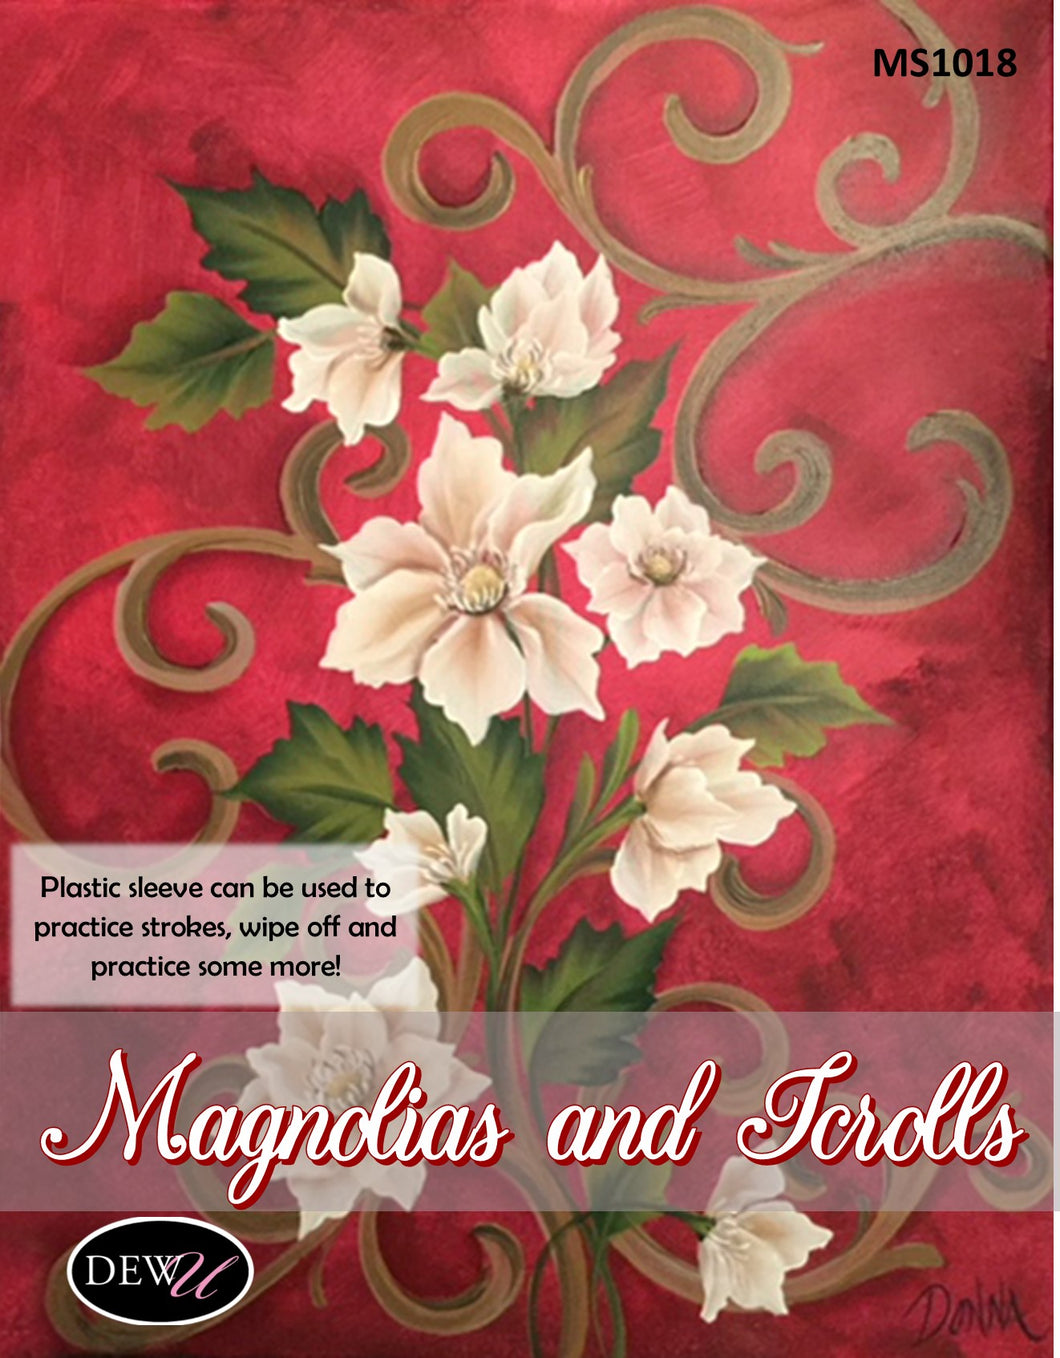 Magnolias and Scrolls-PP